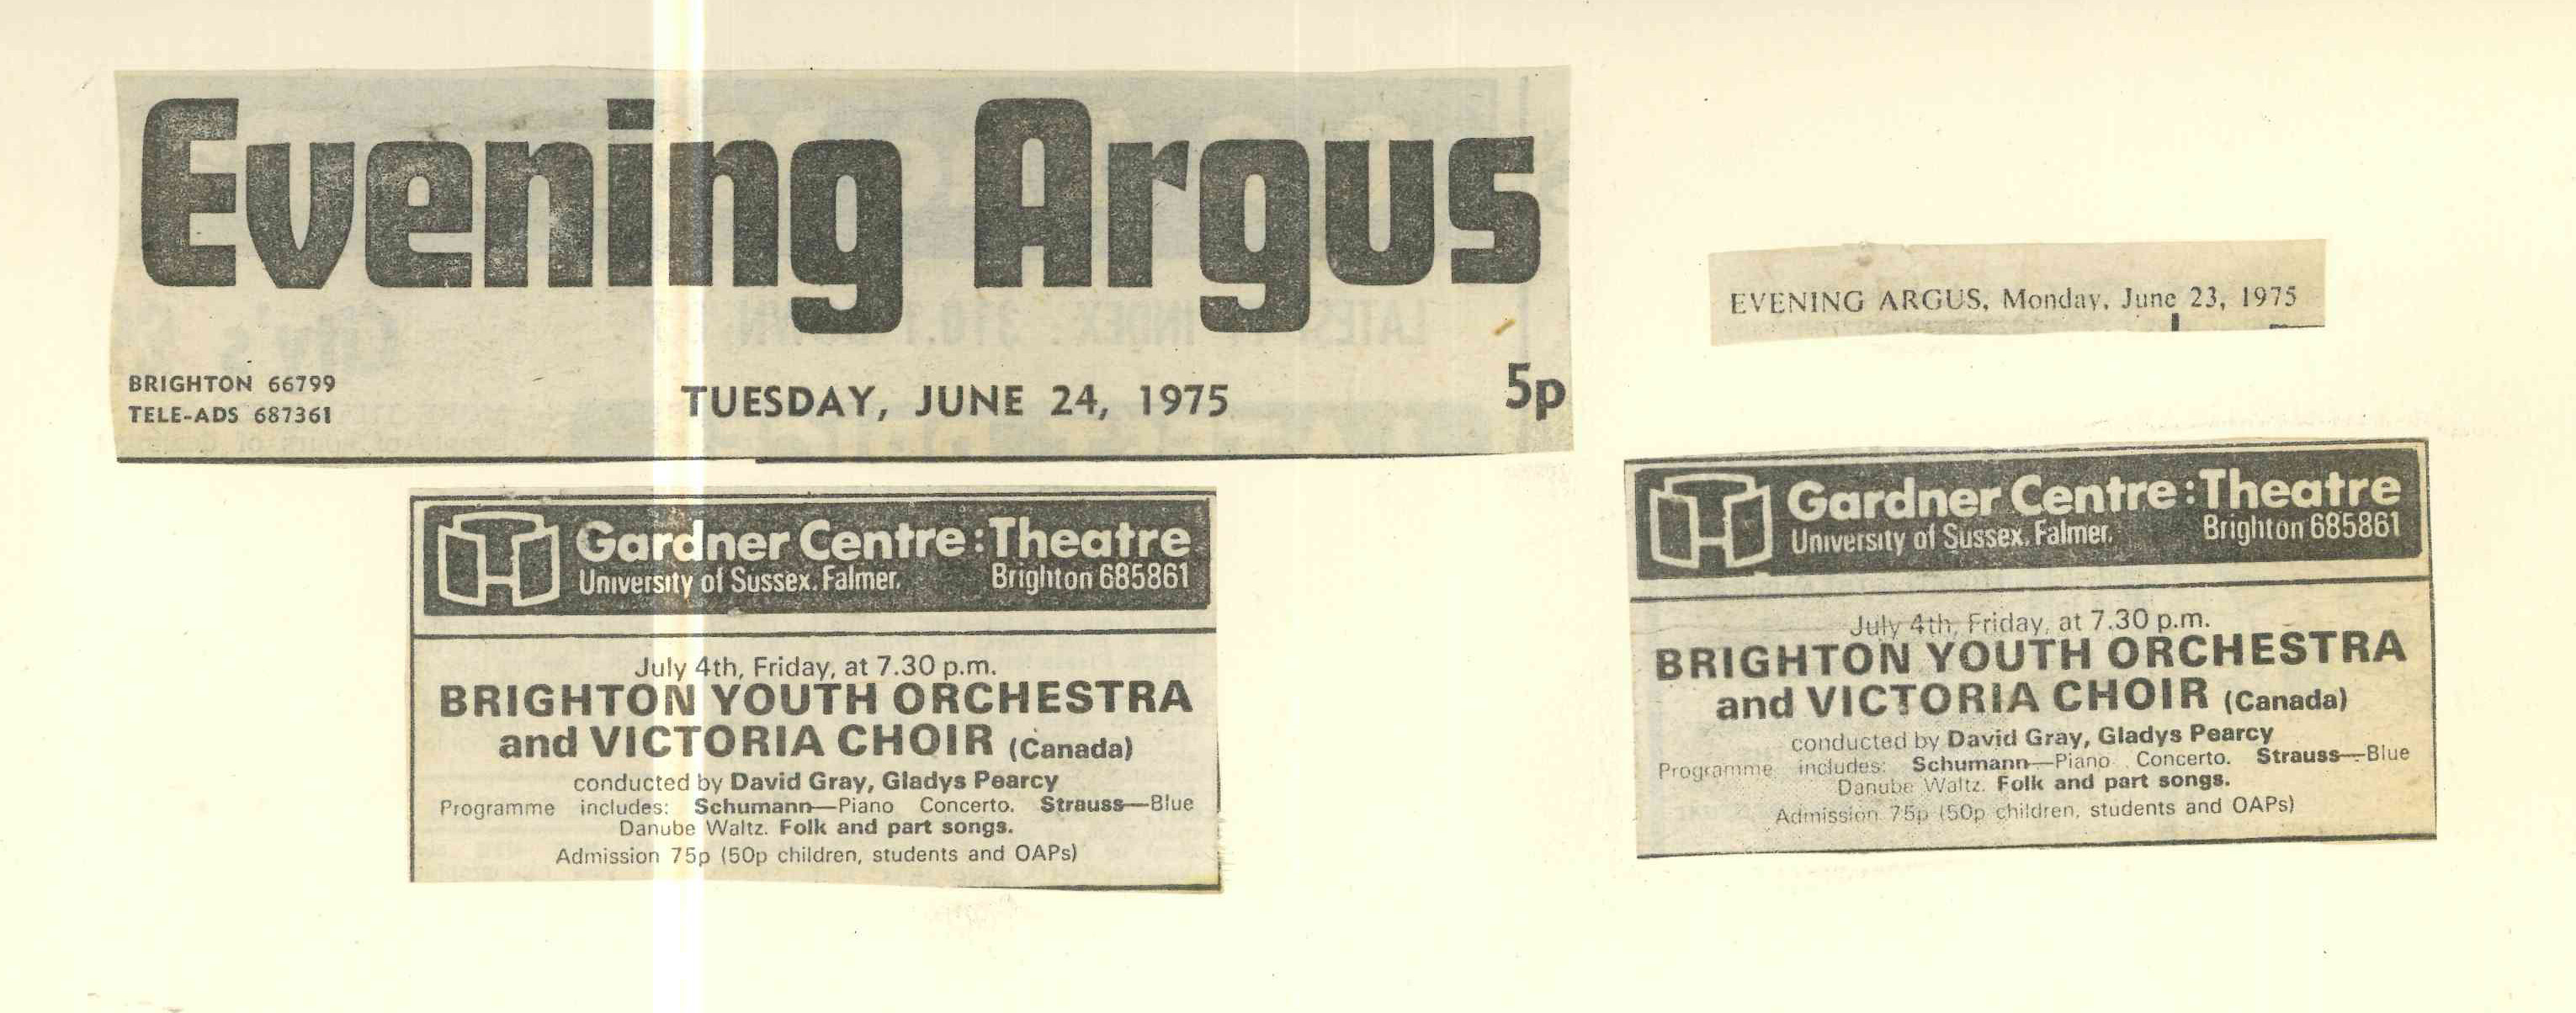 00045-Evening Argus, 24th June 1975.jpg